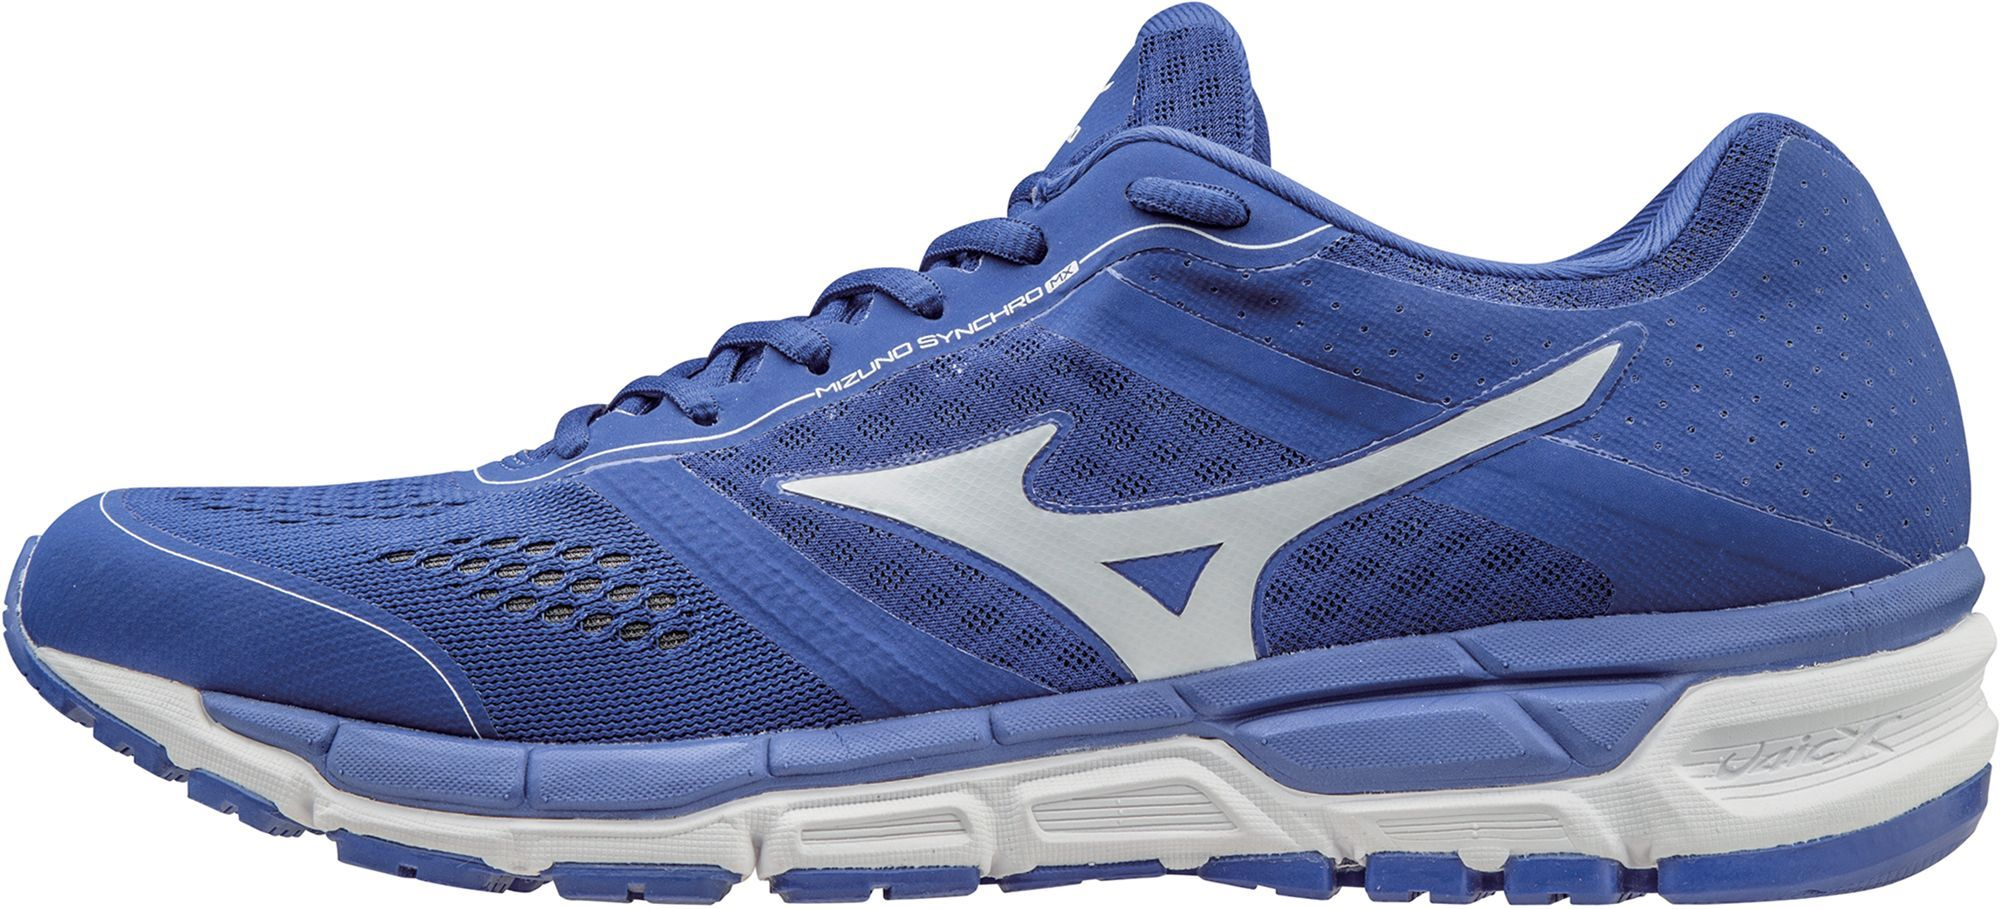 Photo of MIZUNO Men's Synchro MX Baseball Turf Shoes, Size: 14.0, Blue